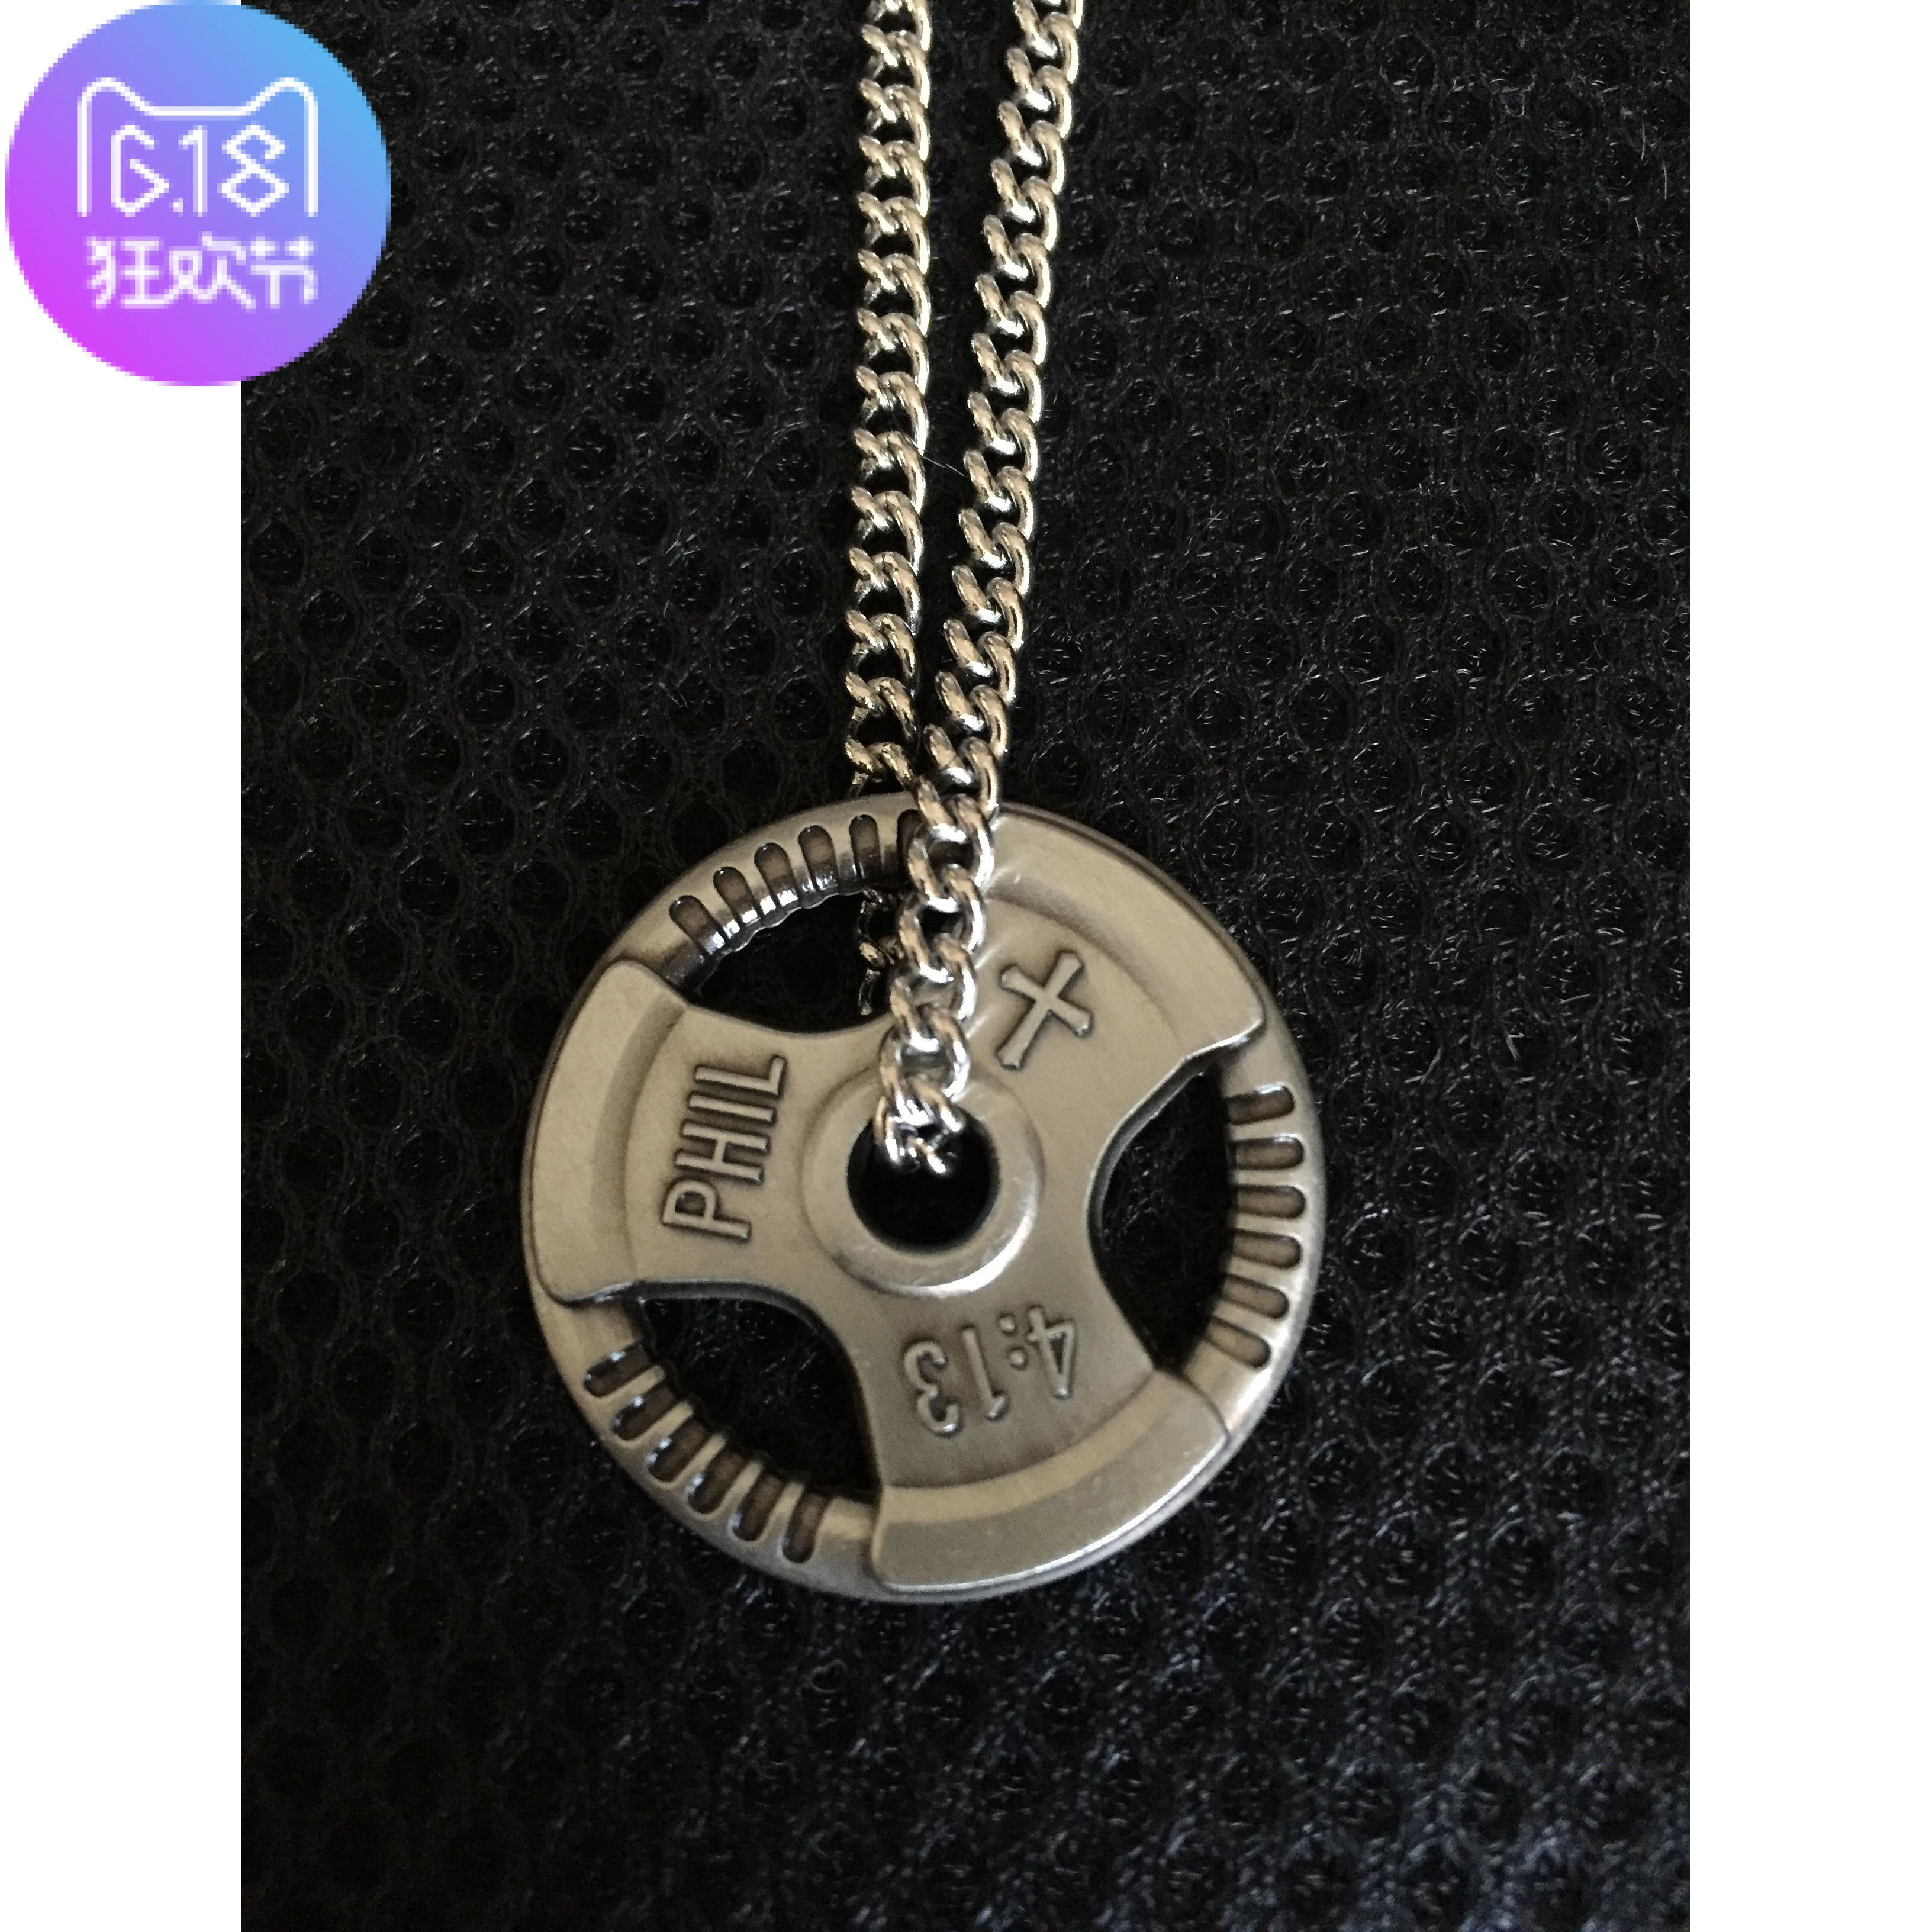 Shields of strength / dumbbell Necklace mens / womens new barbell pieces